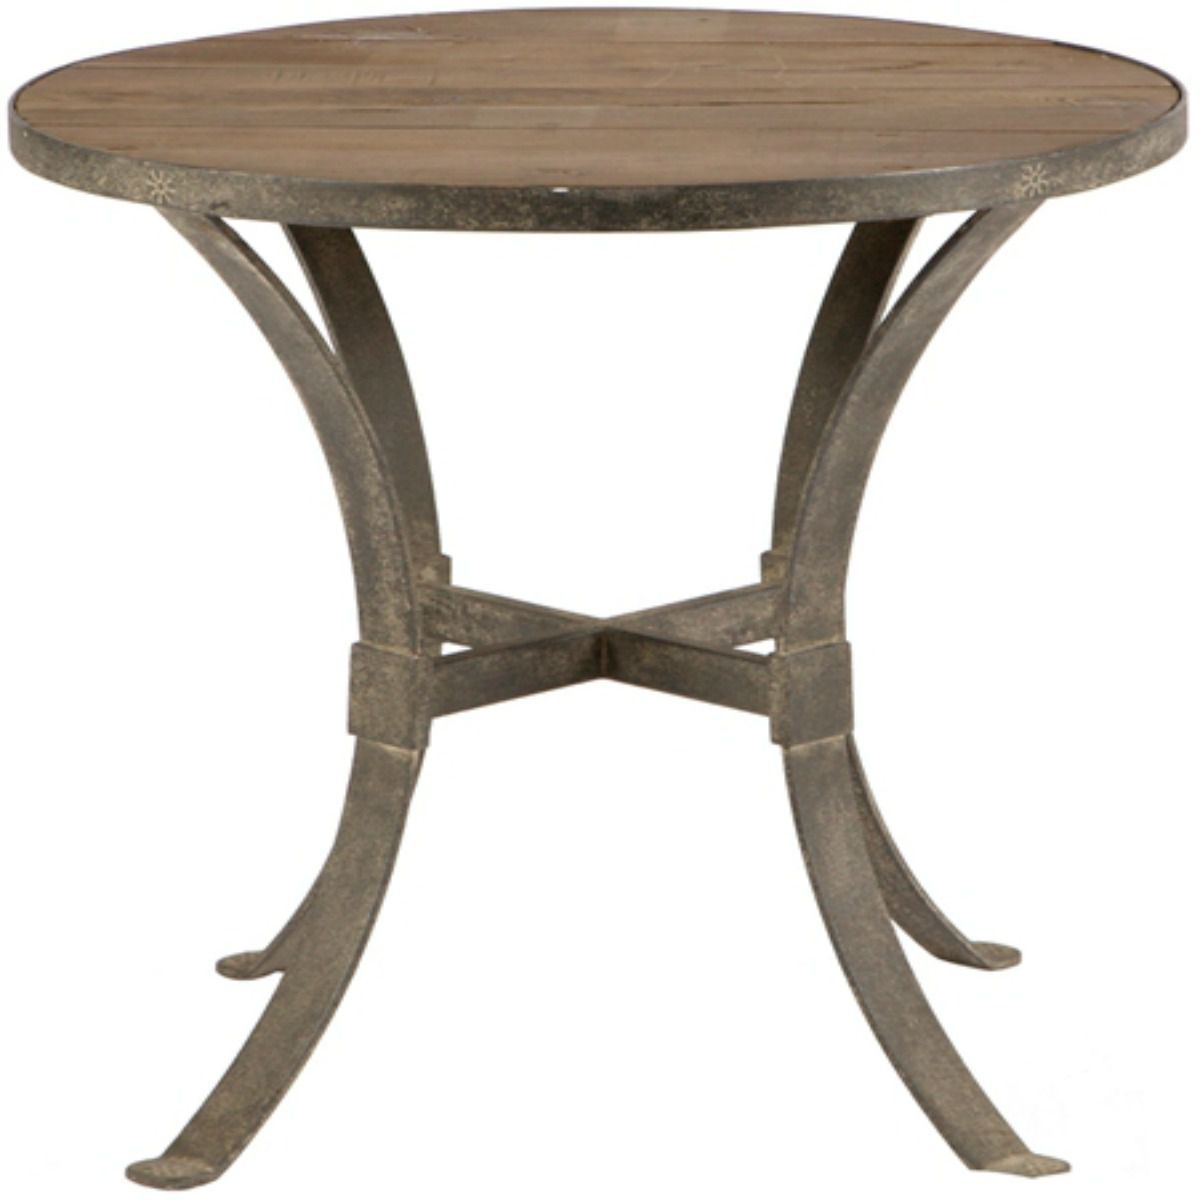 Rustic round coffee table seaside side table  coastal side and accent tables  pinterest